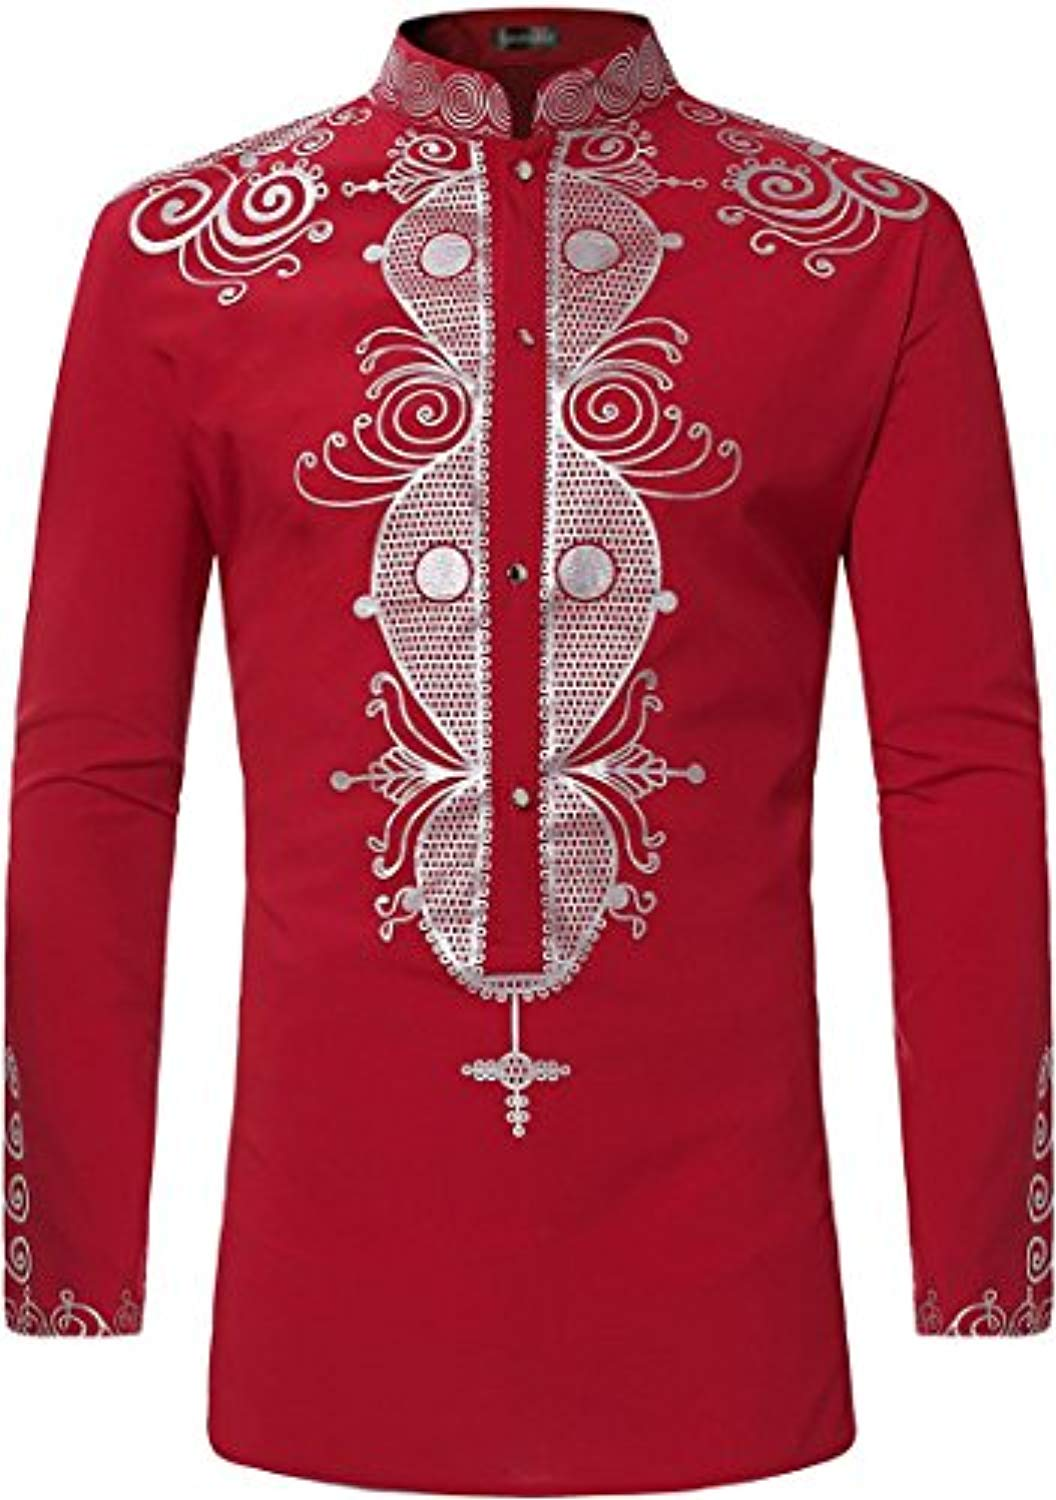 Sportides Men's Casual African Style Printing Long Sleeve Button Down Dress Shirts Tops JZA384 - Ufumbuzi - Home